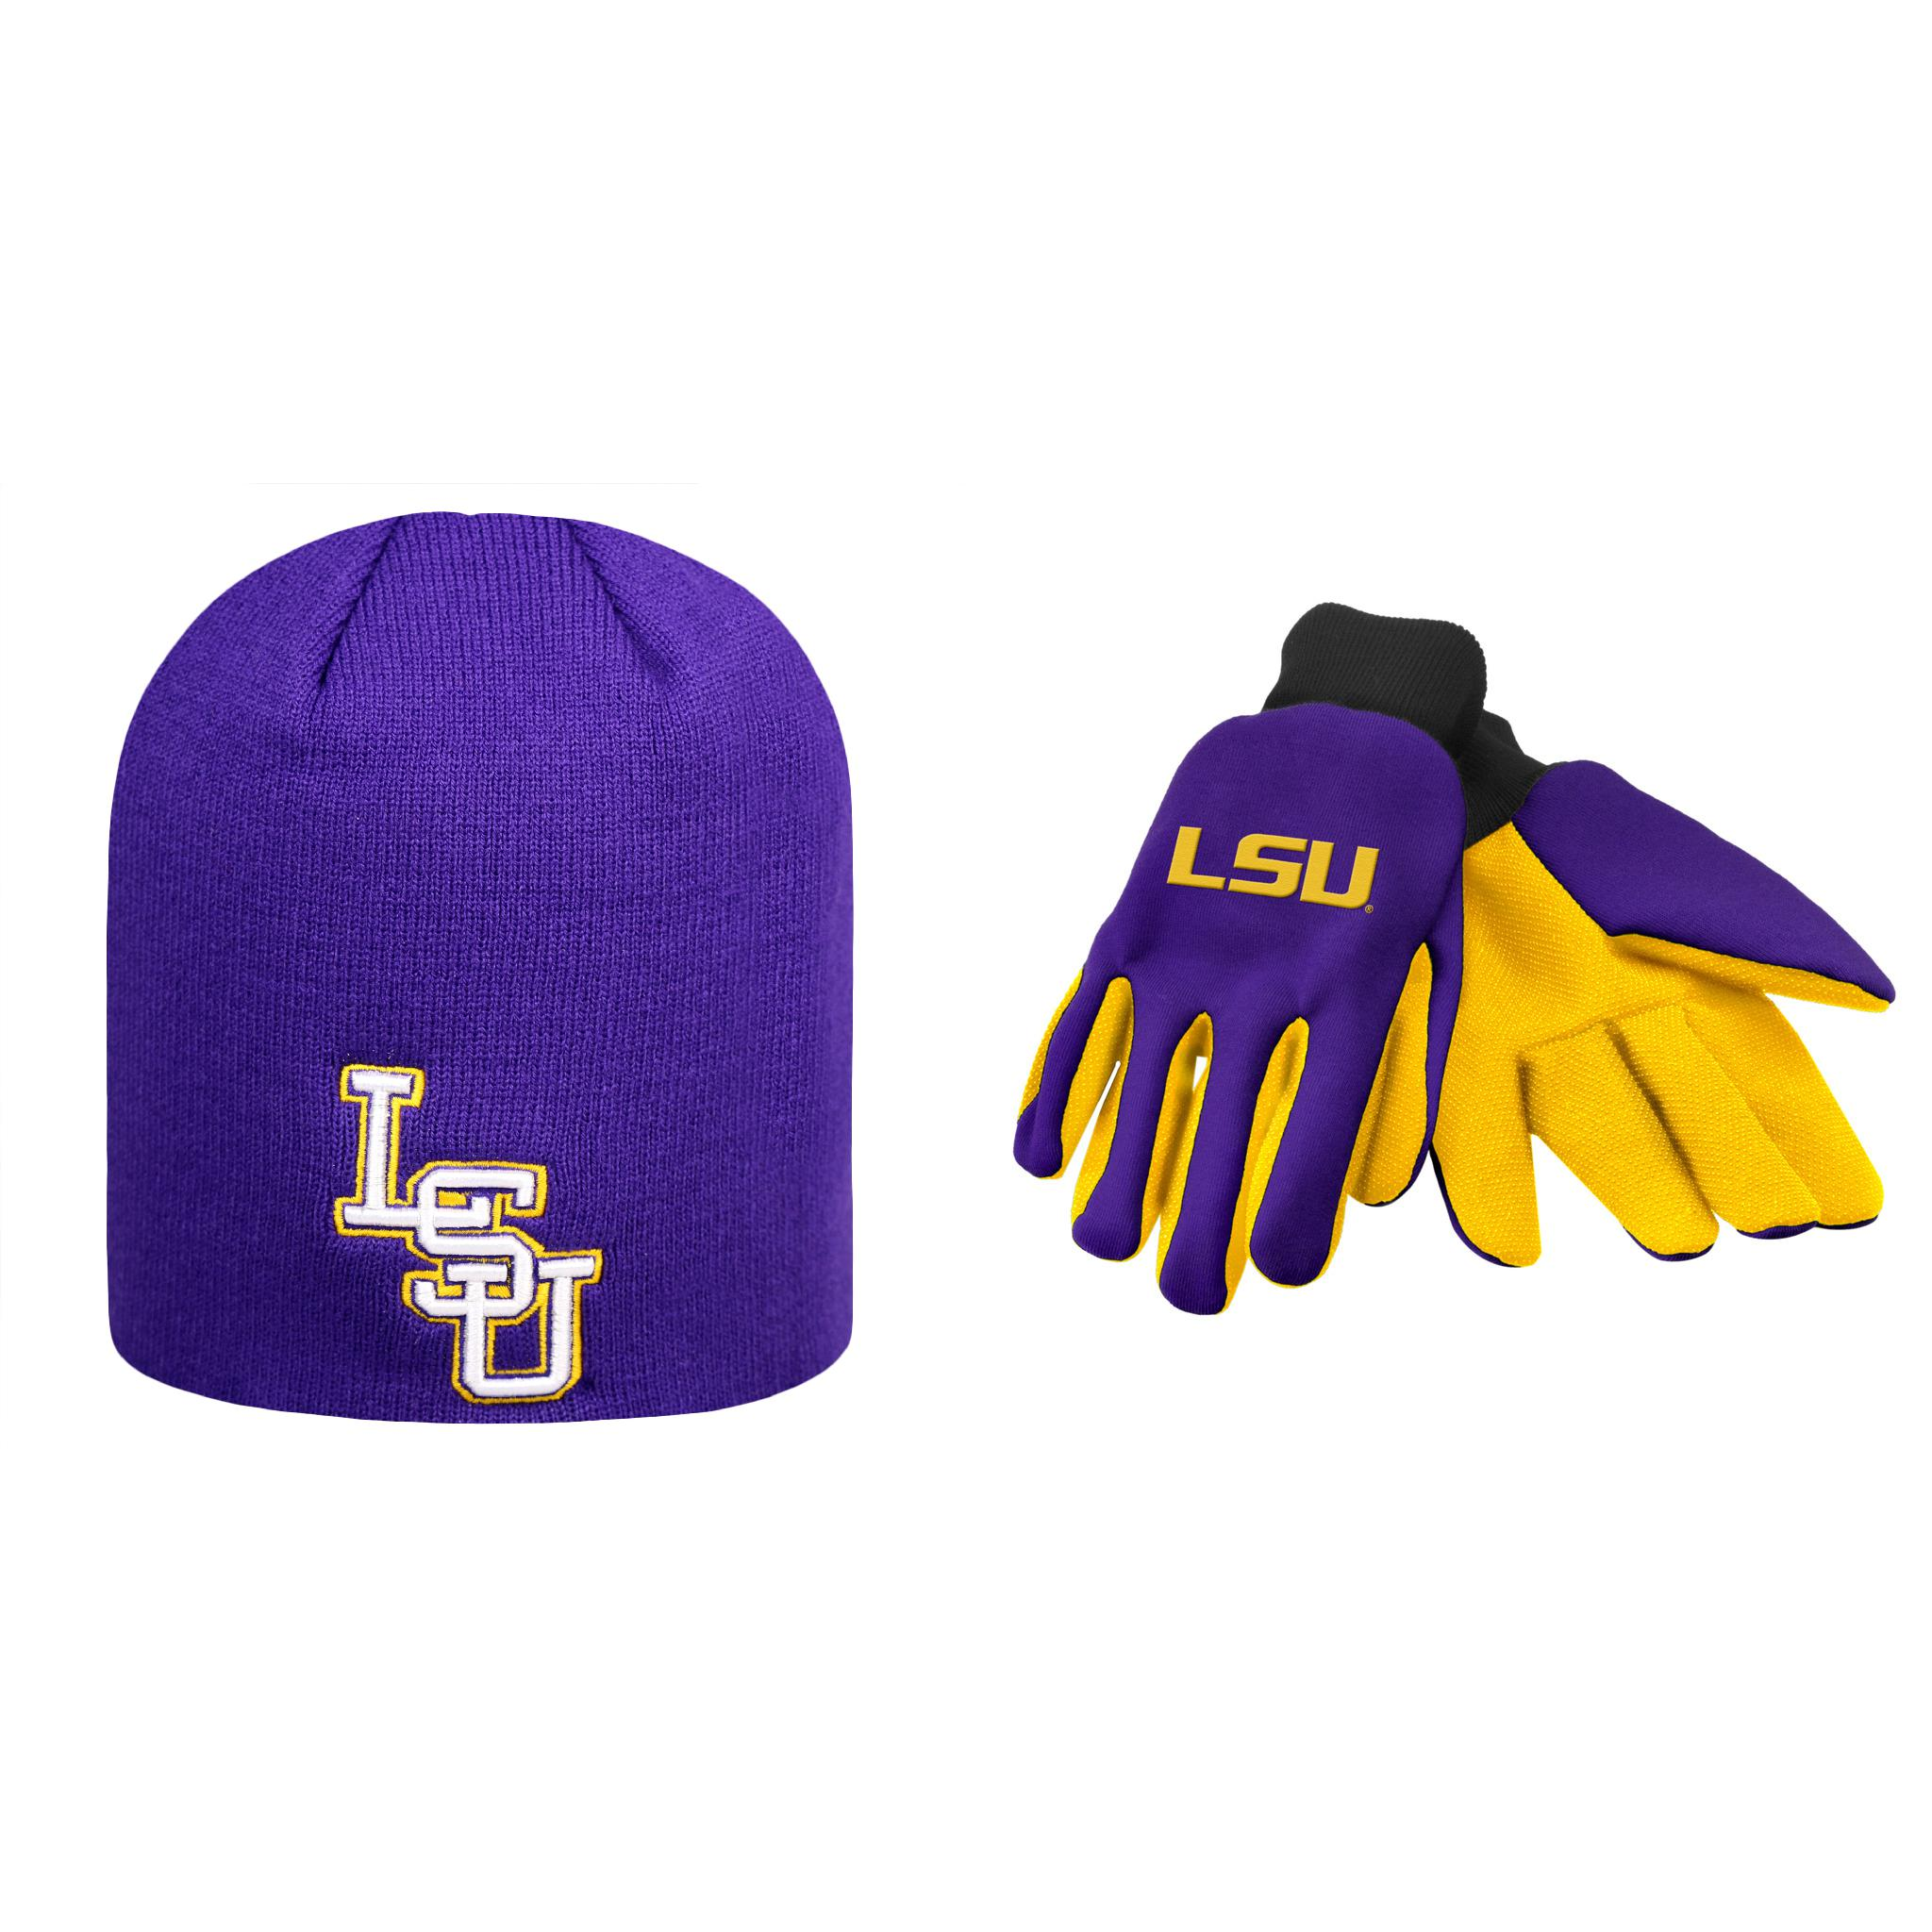 save off 034f6 04c60 ... italy ncaa lsu tigers classic beanie hat and grip work glove 2 pack  bundle baa3b 51aaa ...